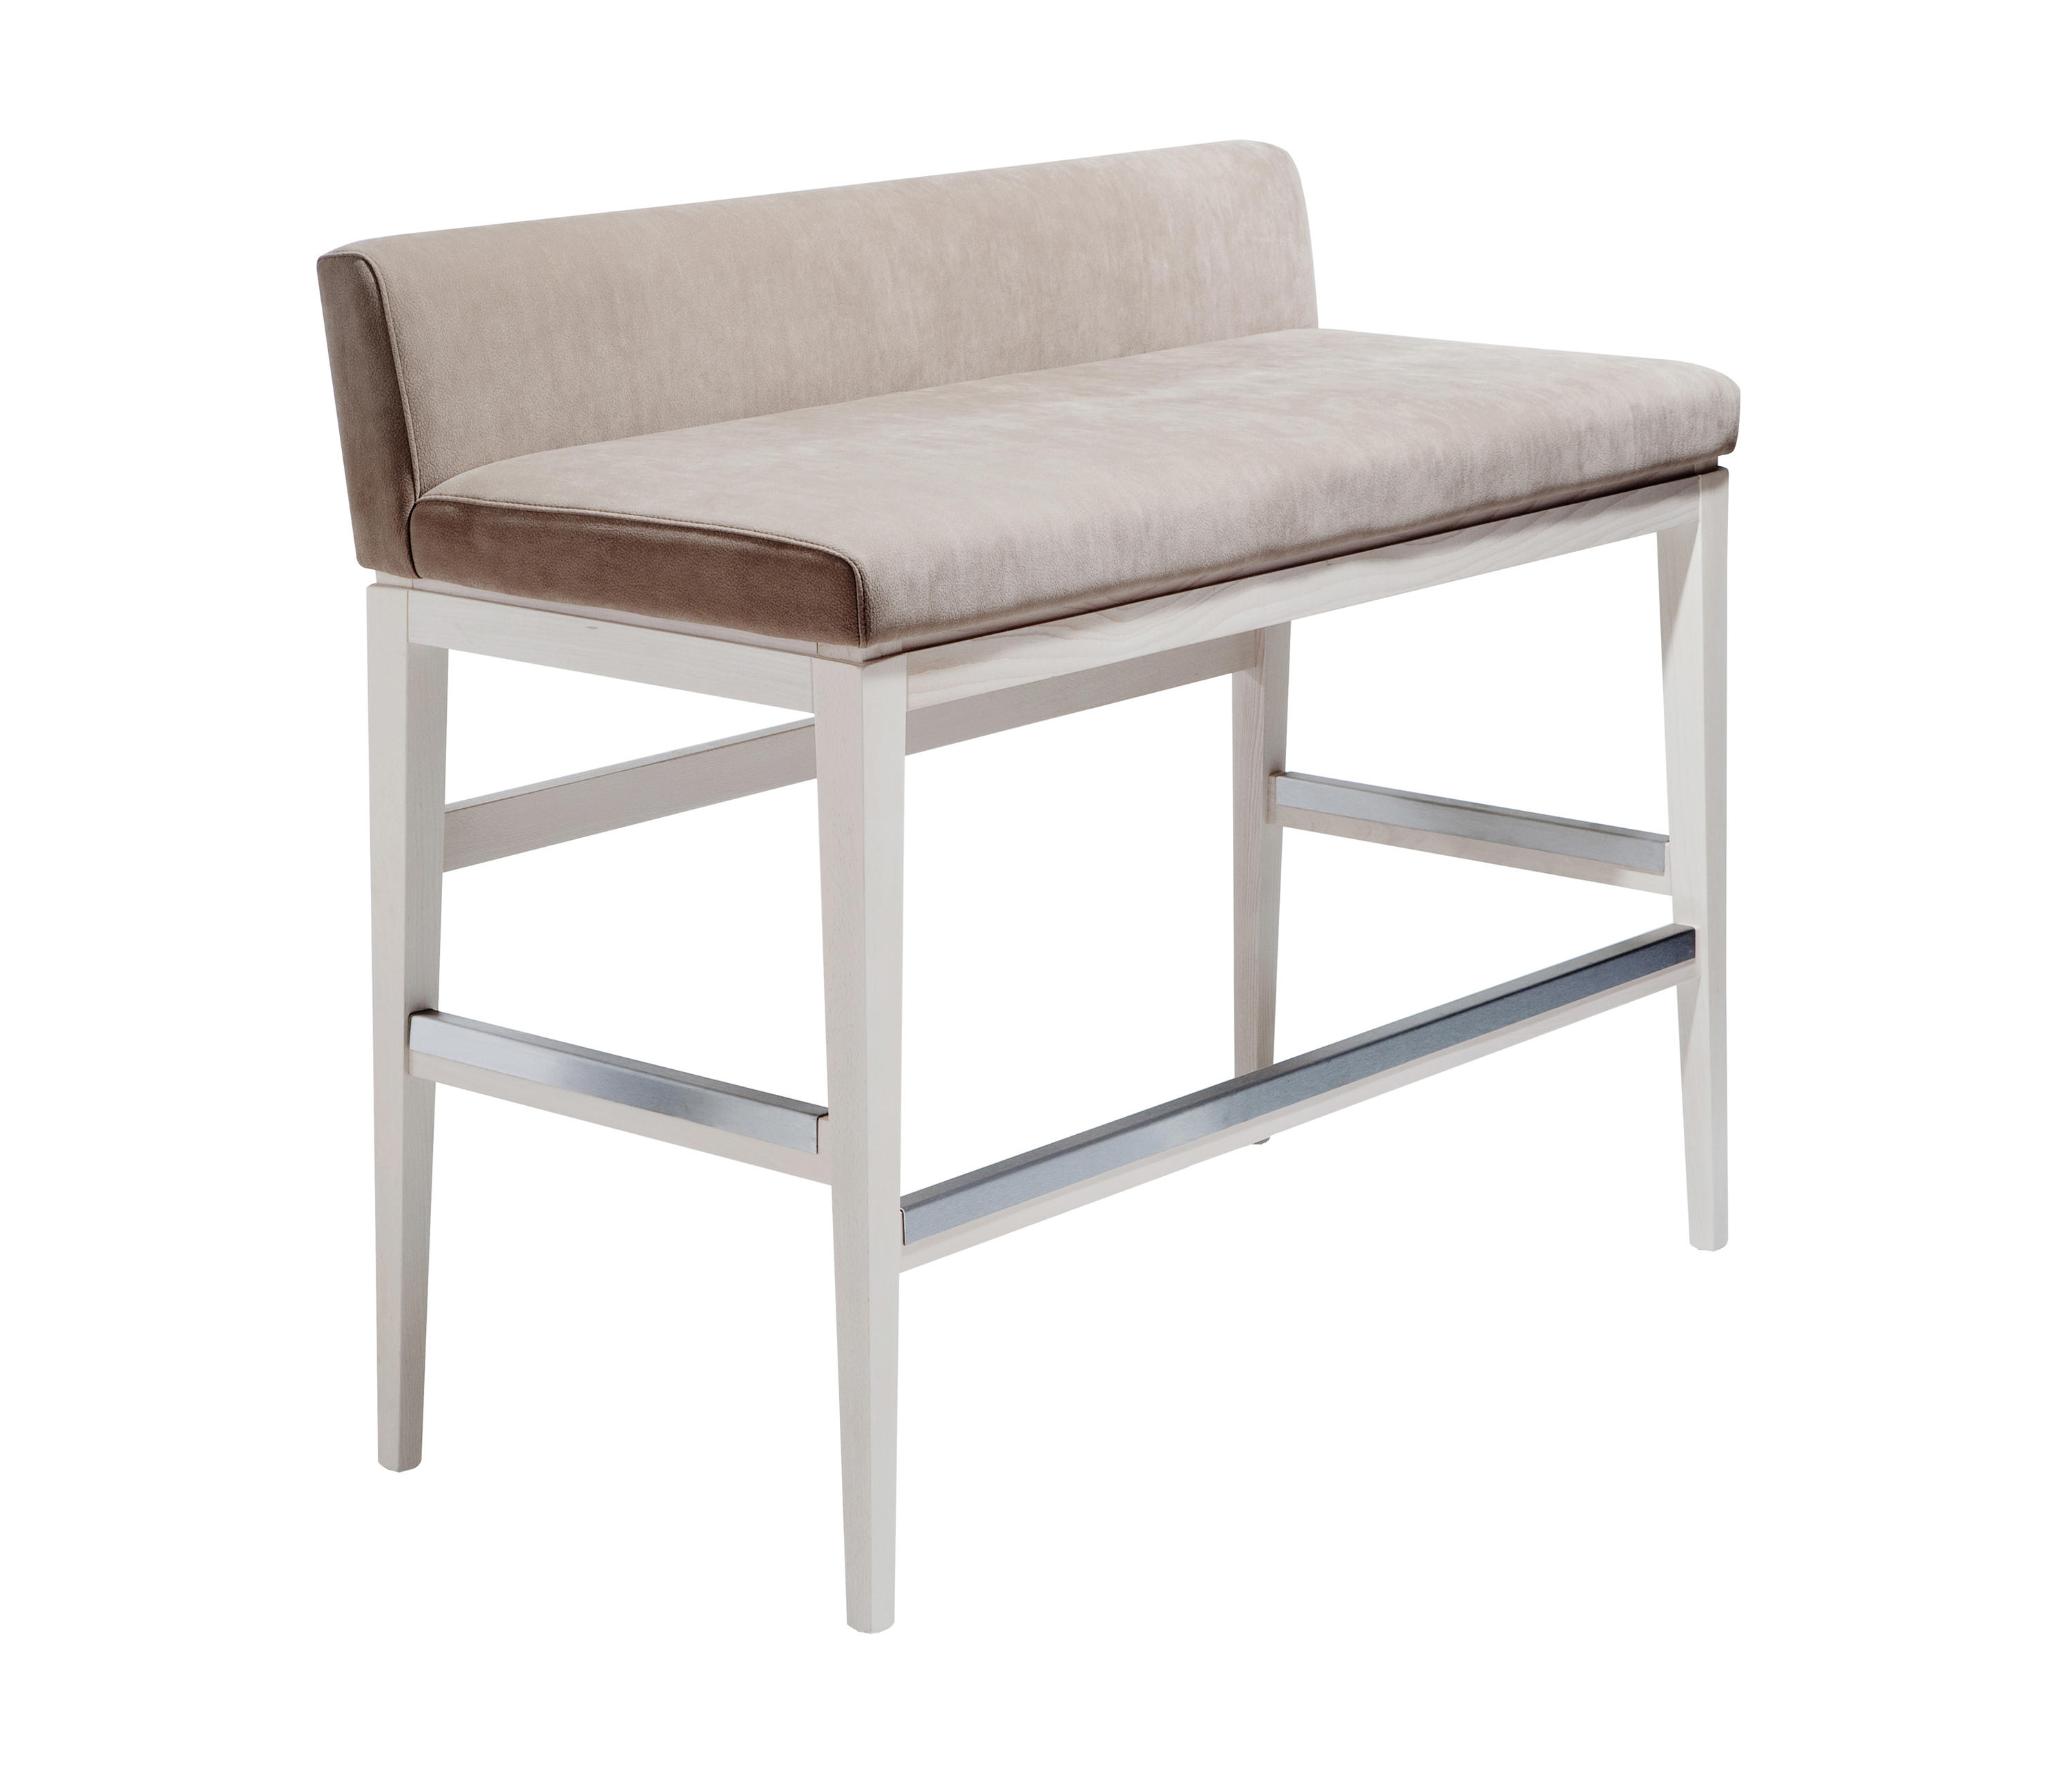 583LB-LOVE BAR SOFA - Sitzbänke von Aceray | Architonic